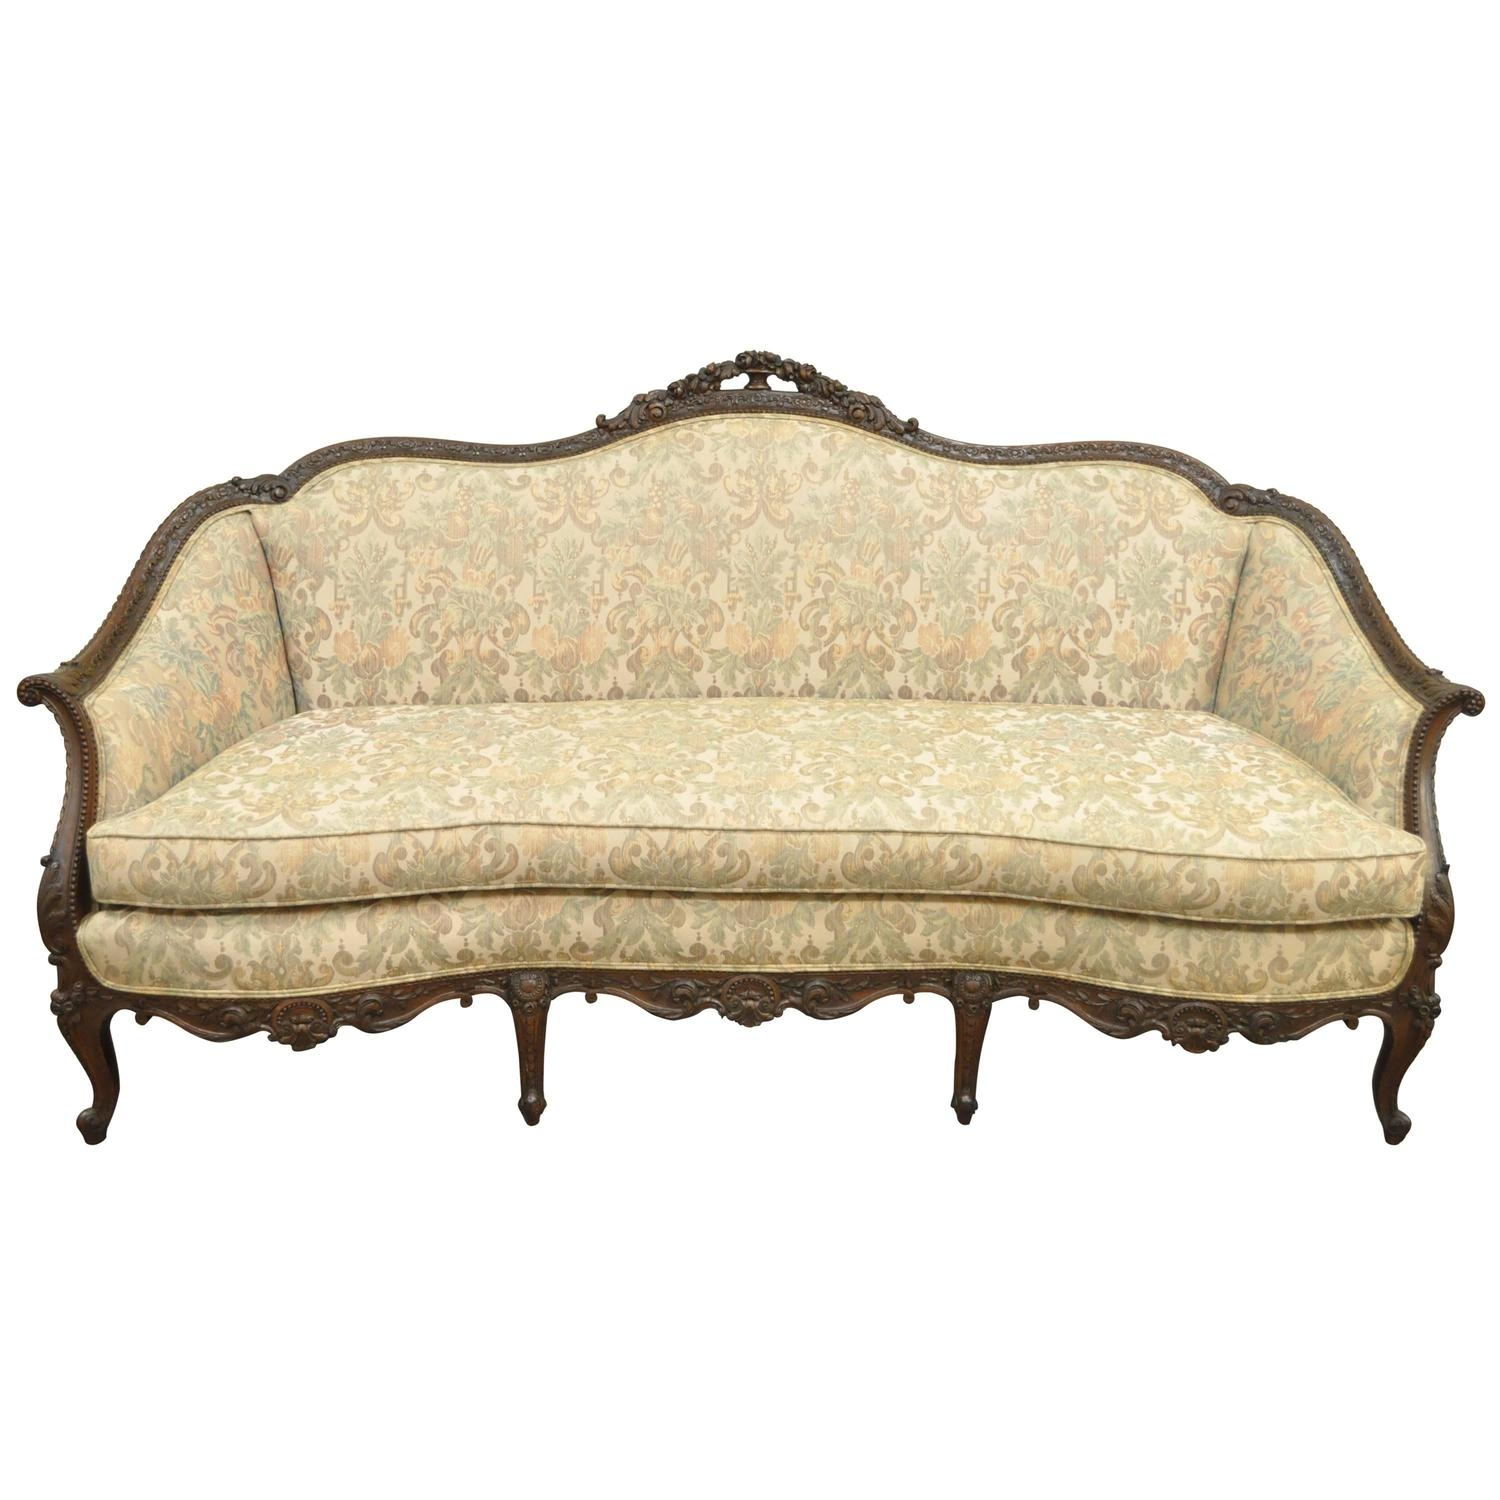 1930s French Louis Xv Hollywood Regency Style Finely Carved Pertaining To 1930s Sofas (Image 2 of 15)